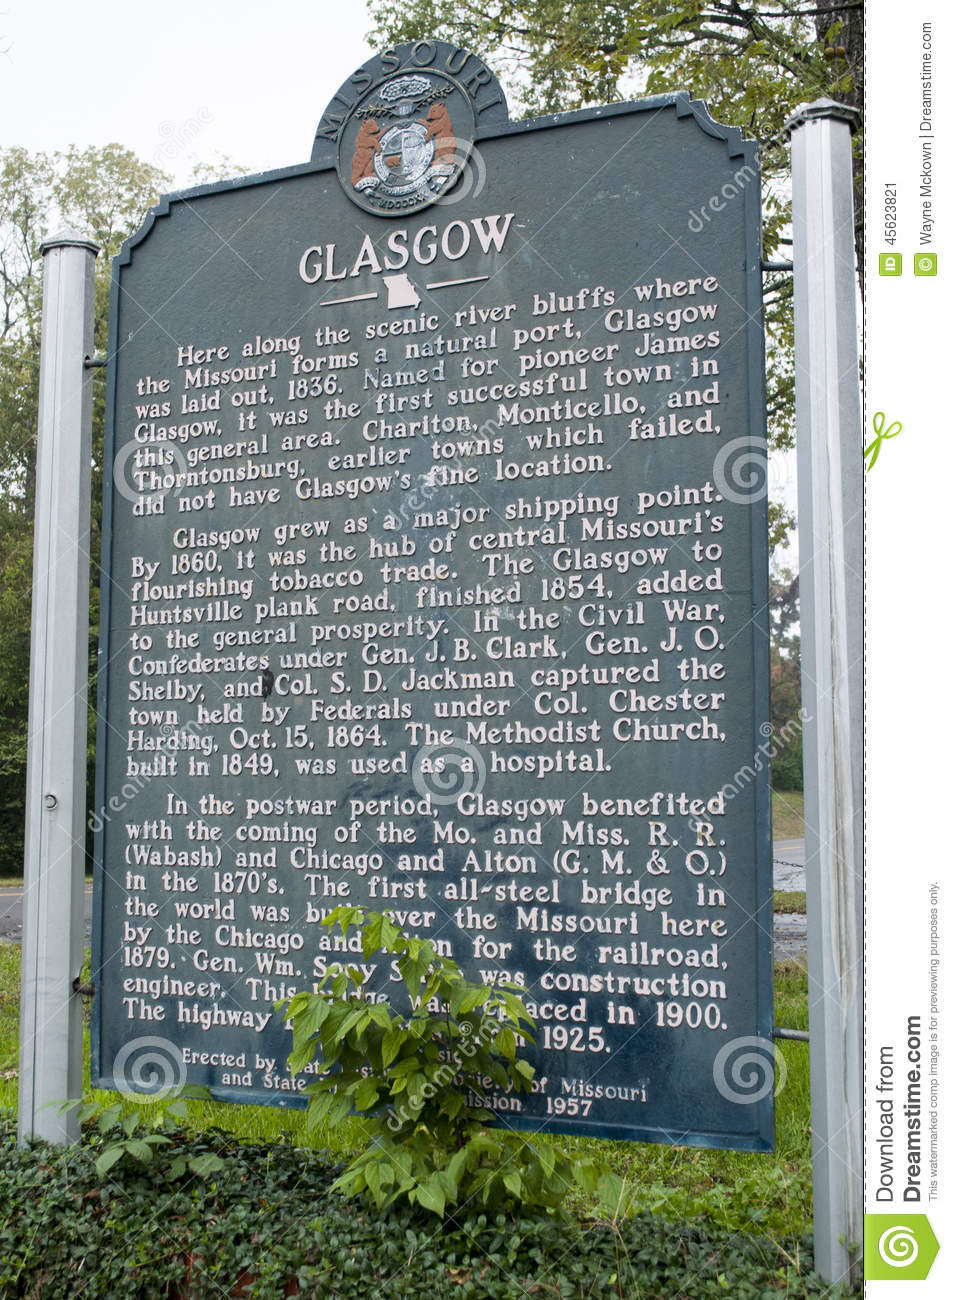 City of Glasgow Marker giving the history of the Battle of Glasgow.